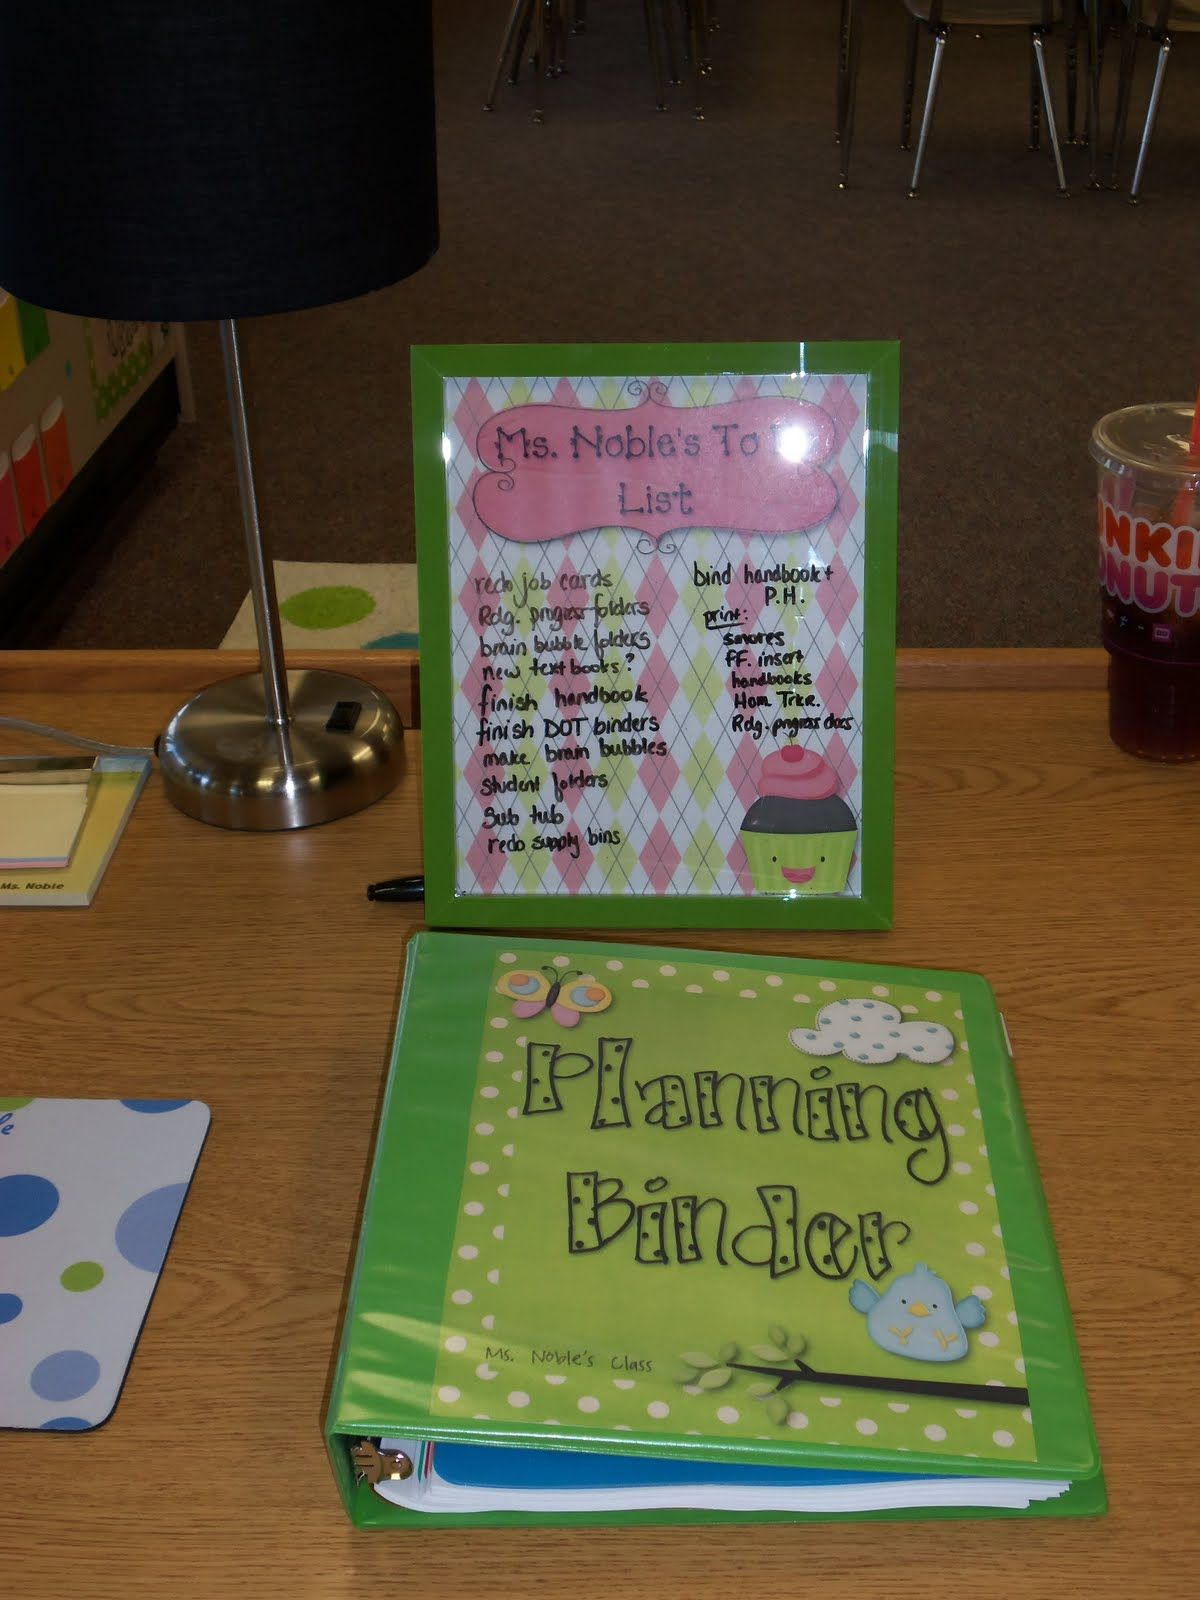 Some Very Cute Ideas For Classroom Organization Love The To Do List In A Frame Idea Find This Pin And